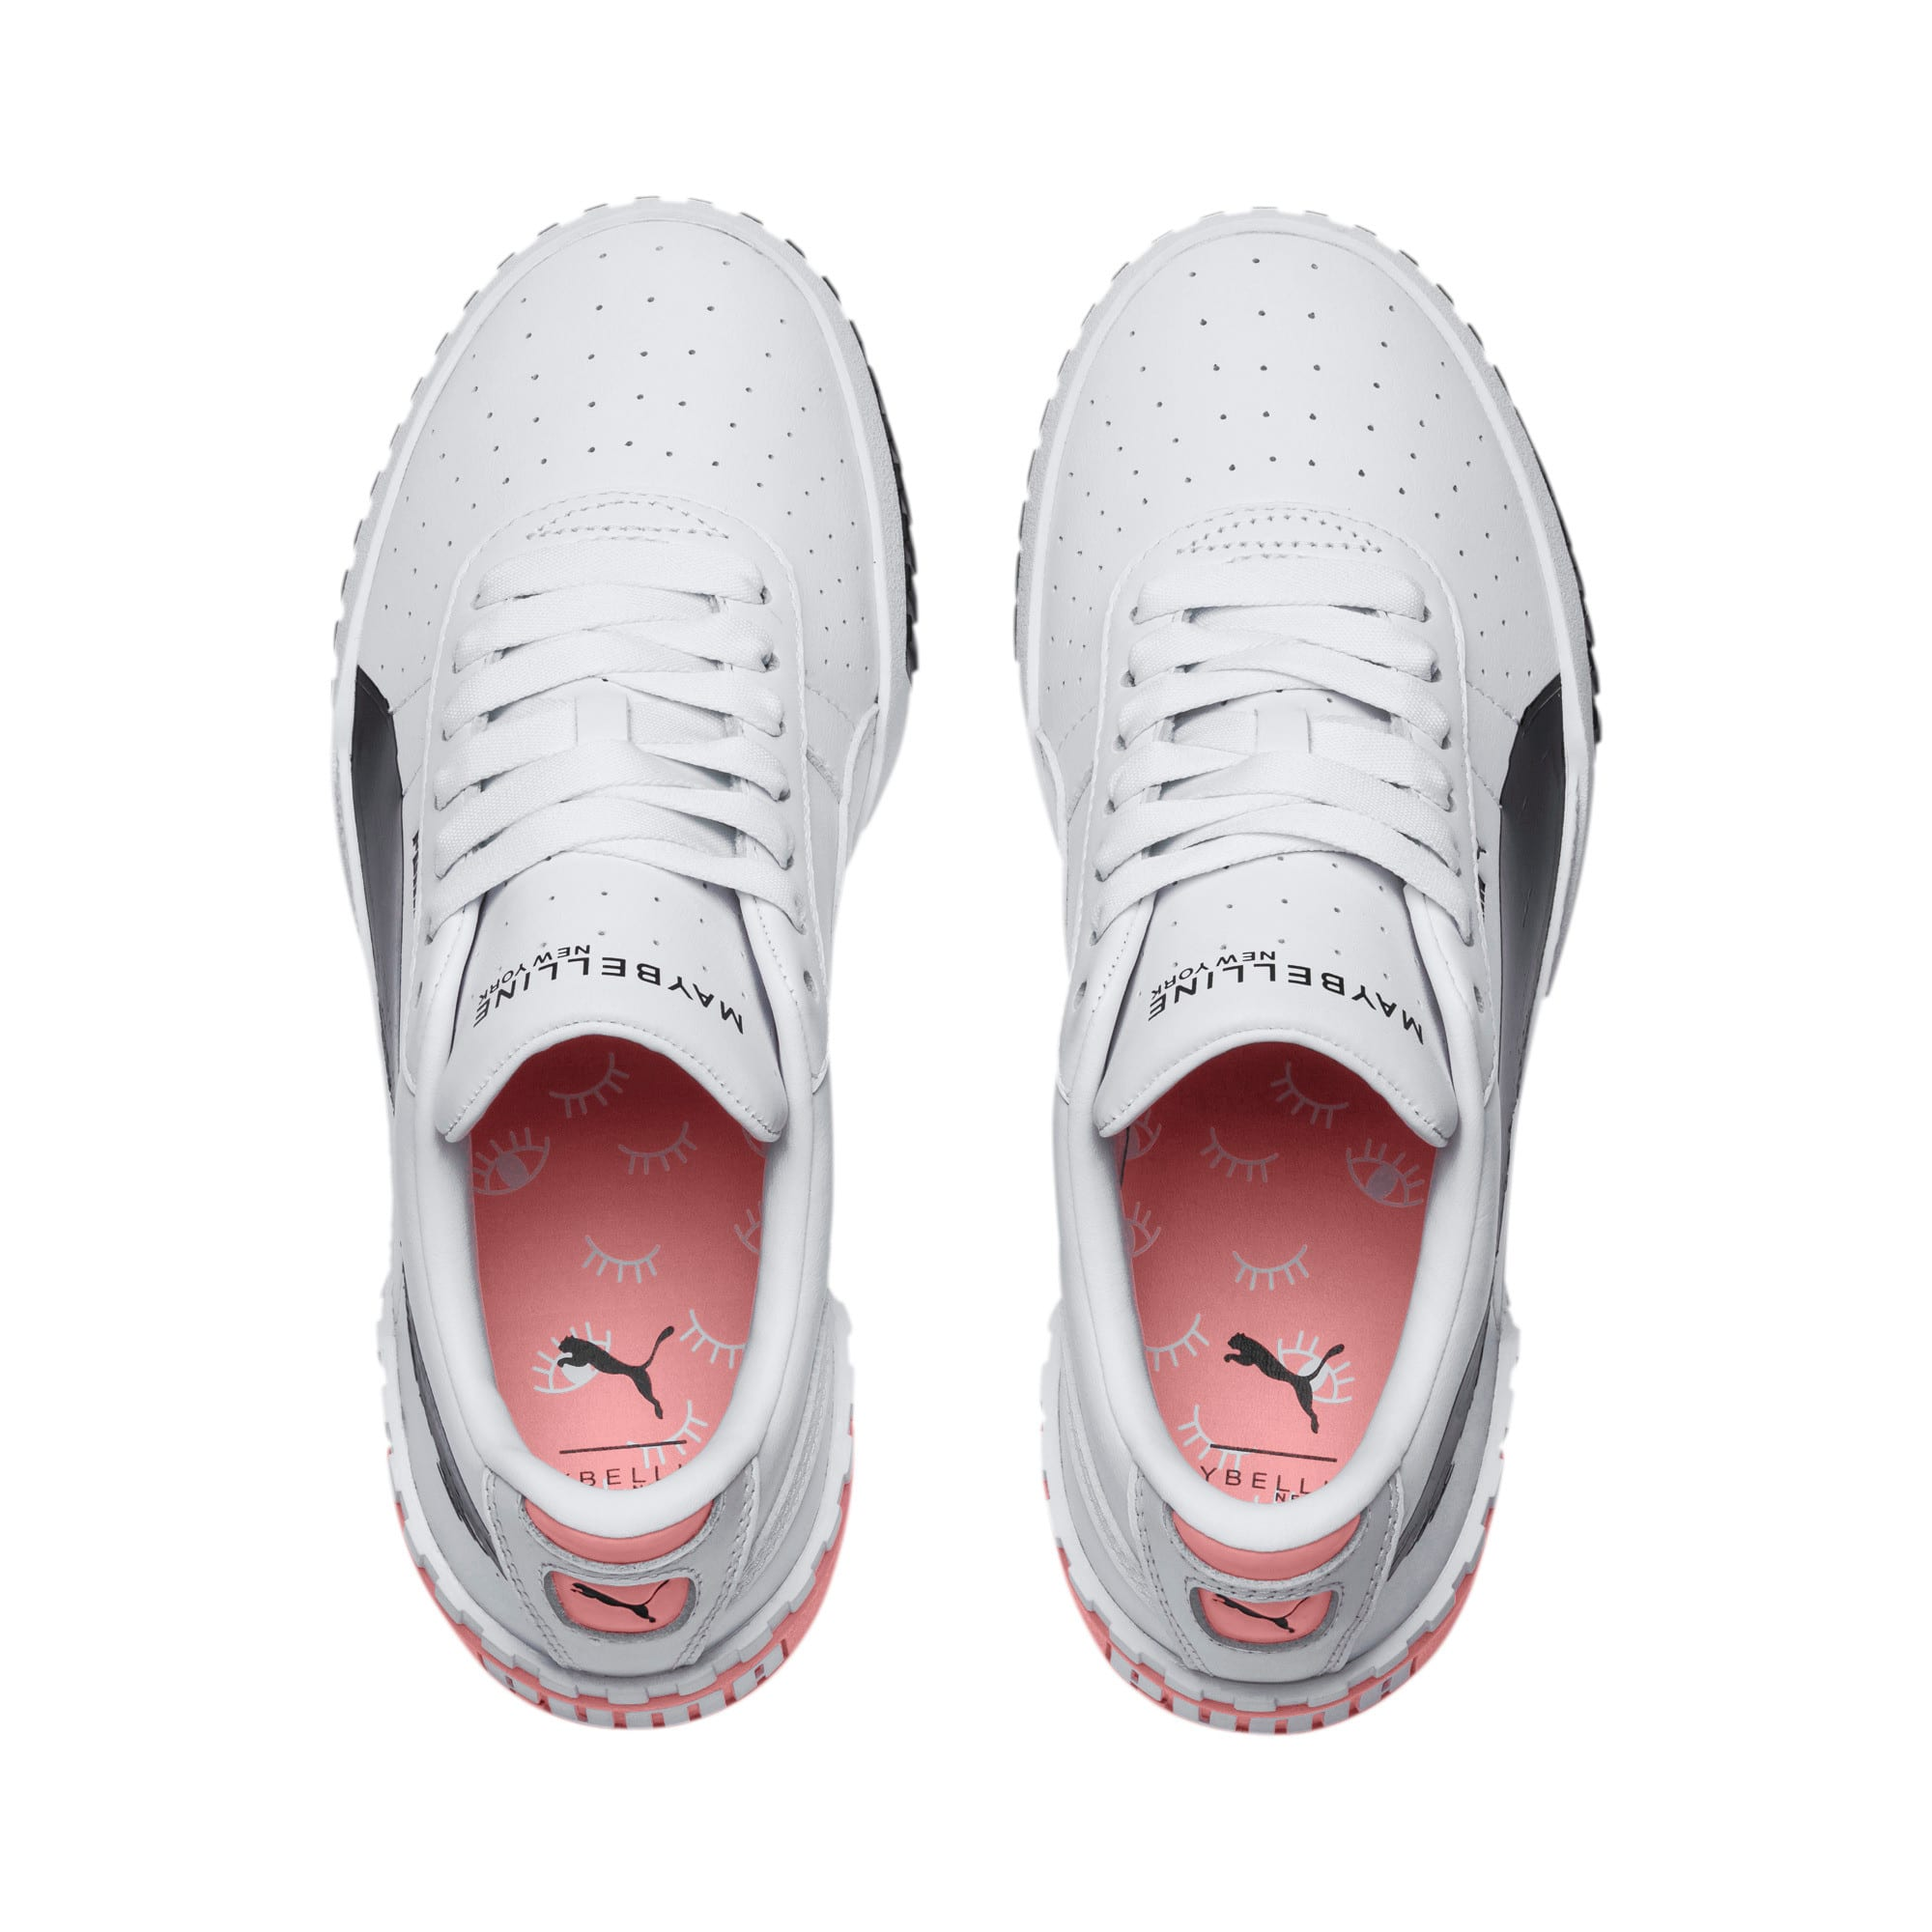 Thumbnail 6 of PUMA x MAYBELLINE Cali Women's Trainers, Puma White-Puma Black, medium